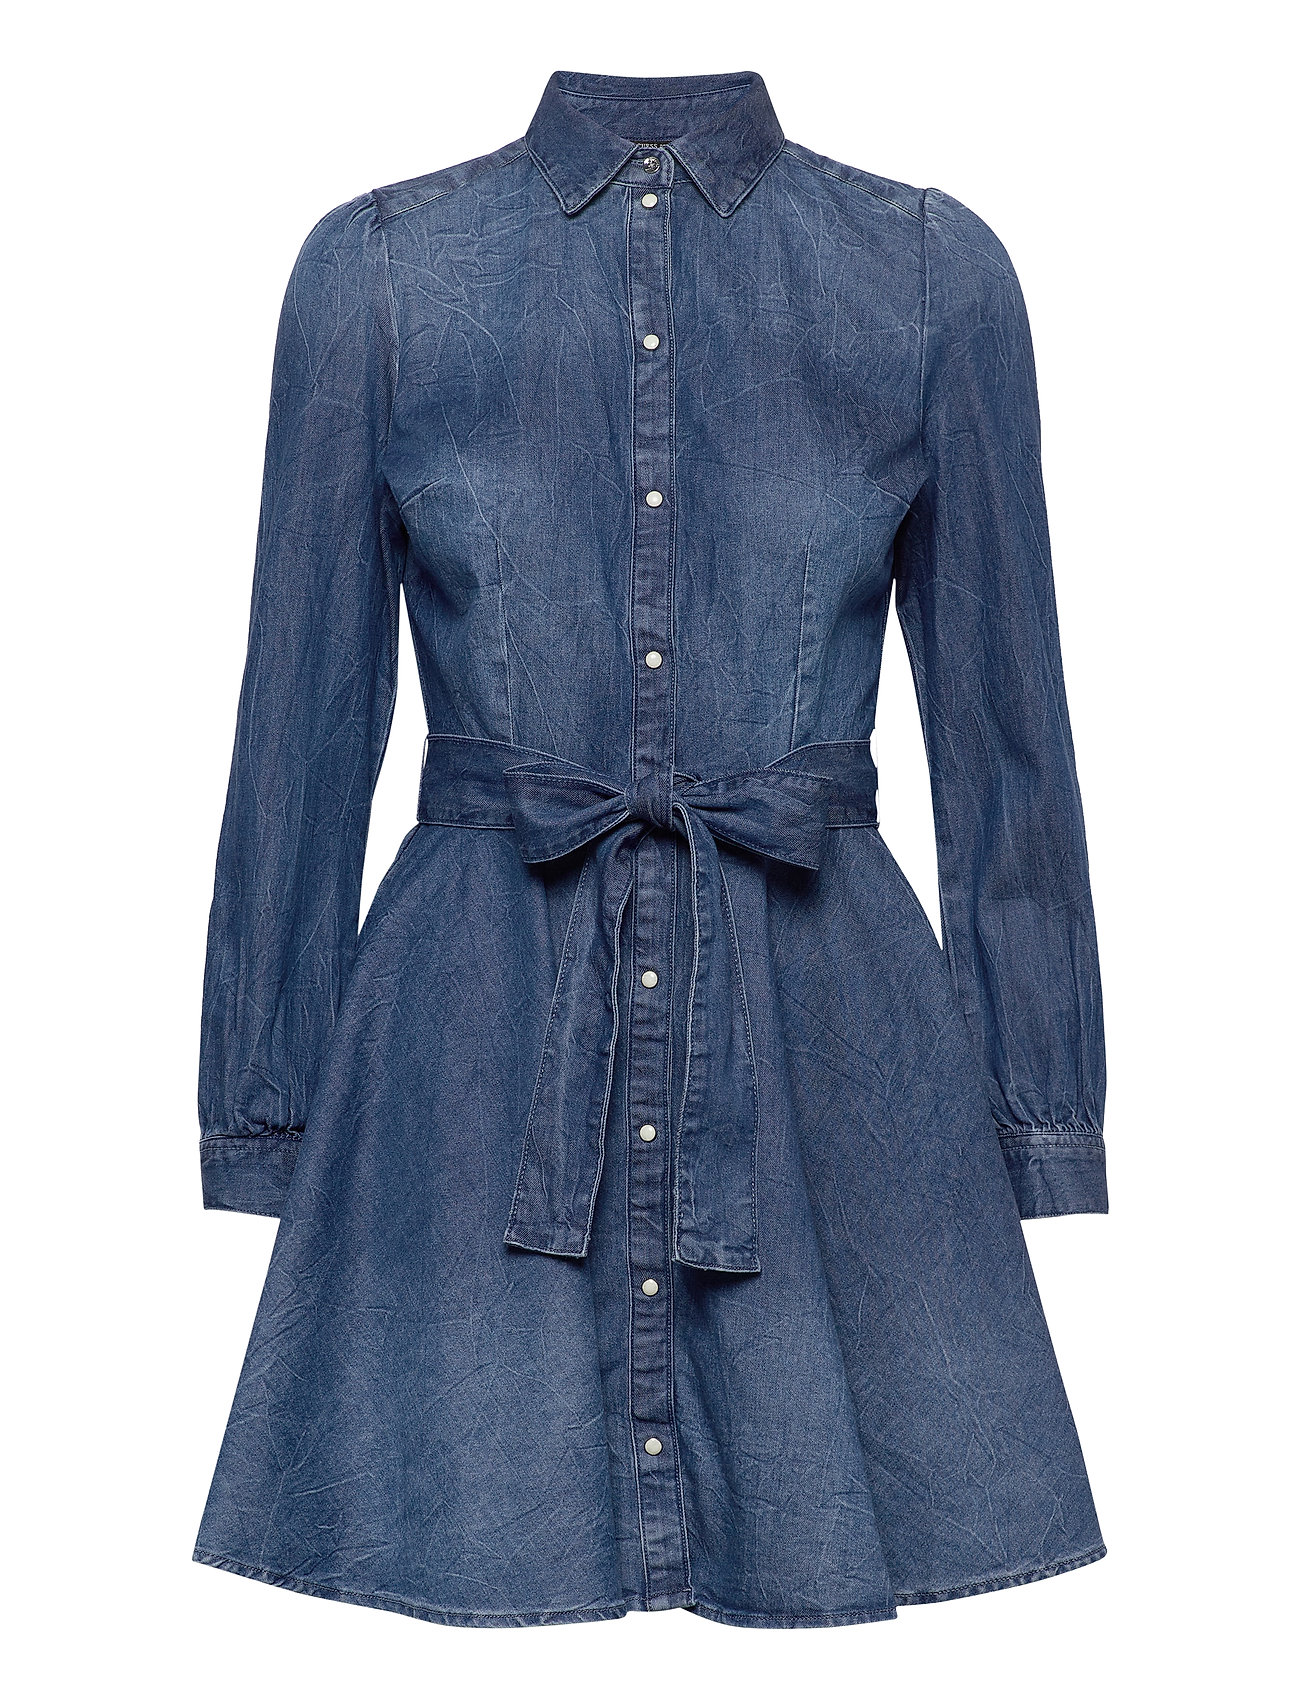 raya shirt dress kleid knielang blau guess jeans | foccz